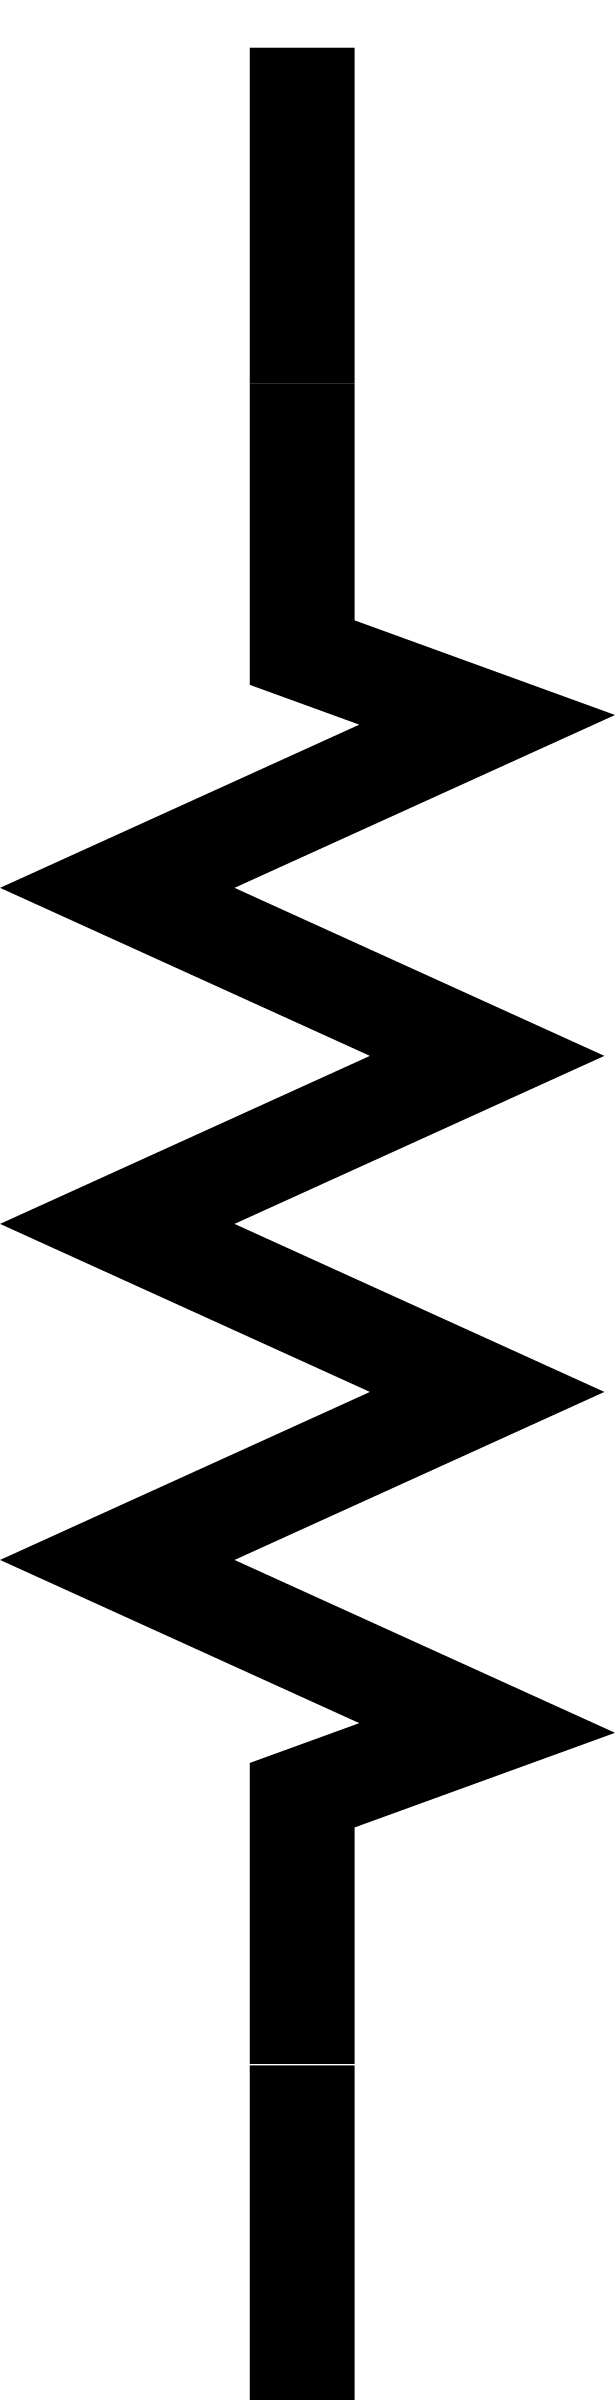 Schematic Symbol For Resistor.